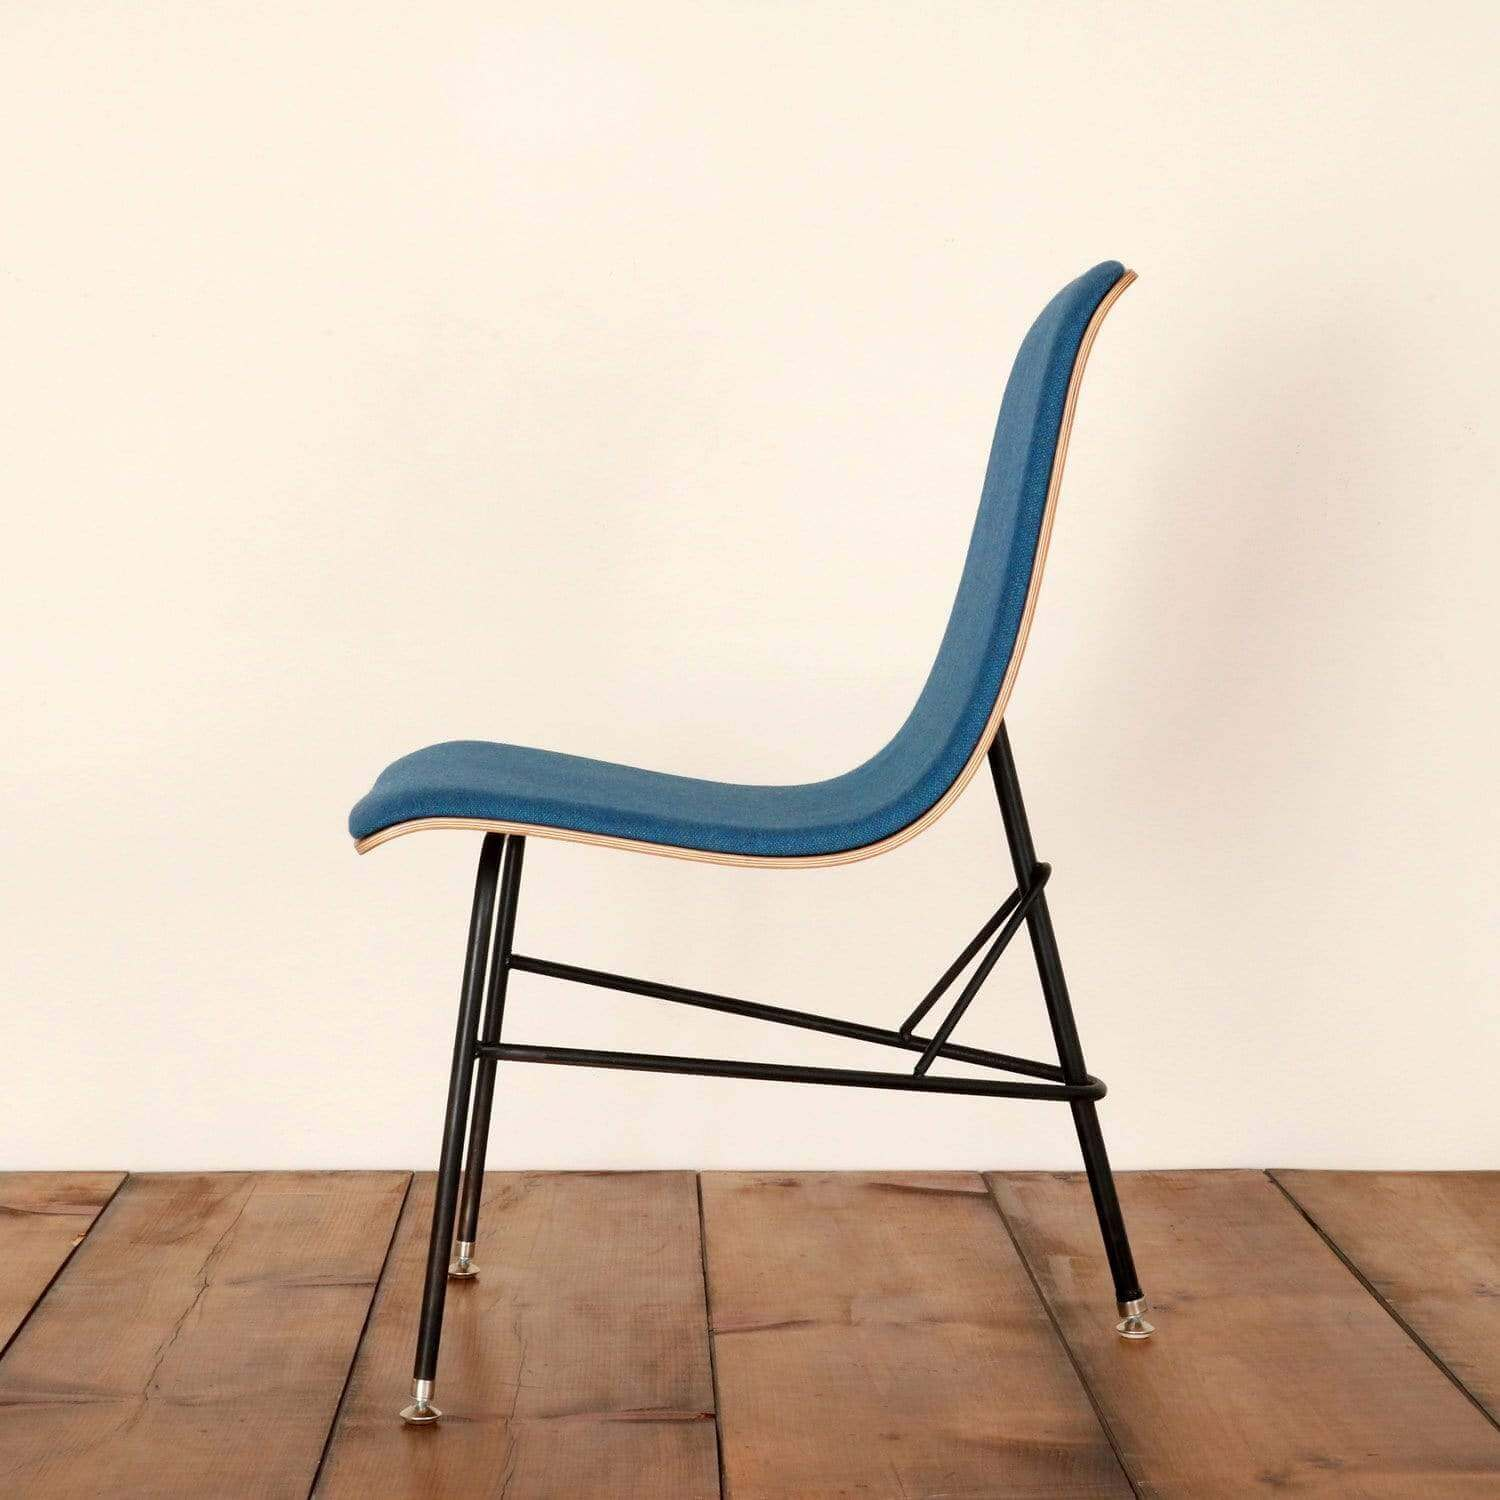 Fully upholstered tripod chair